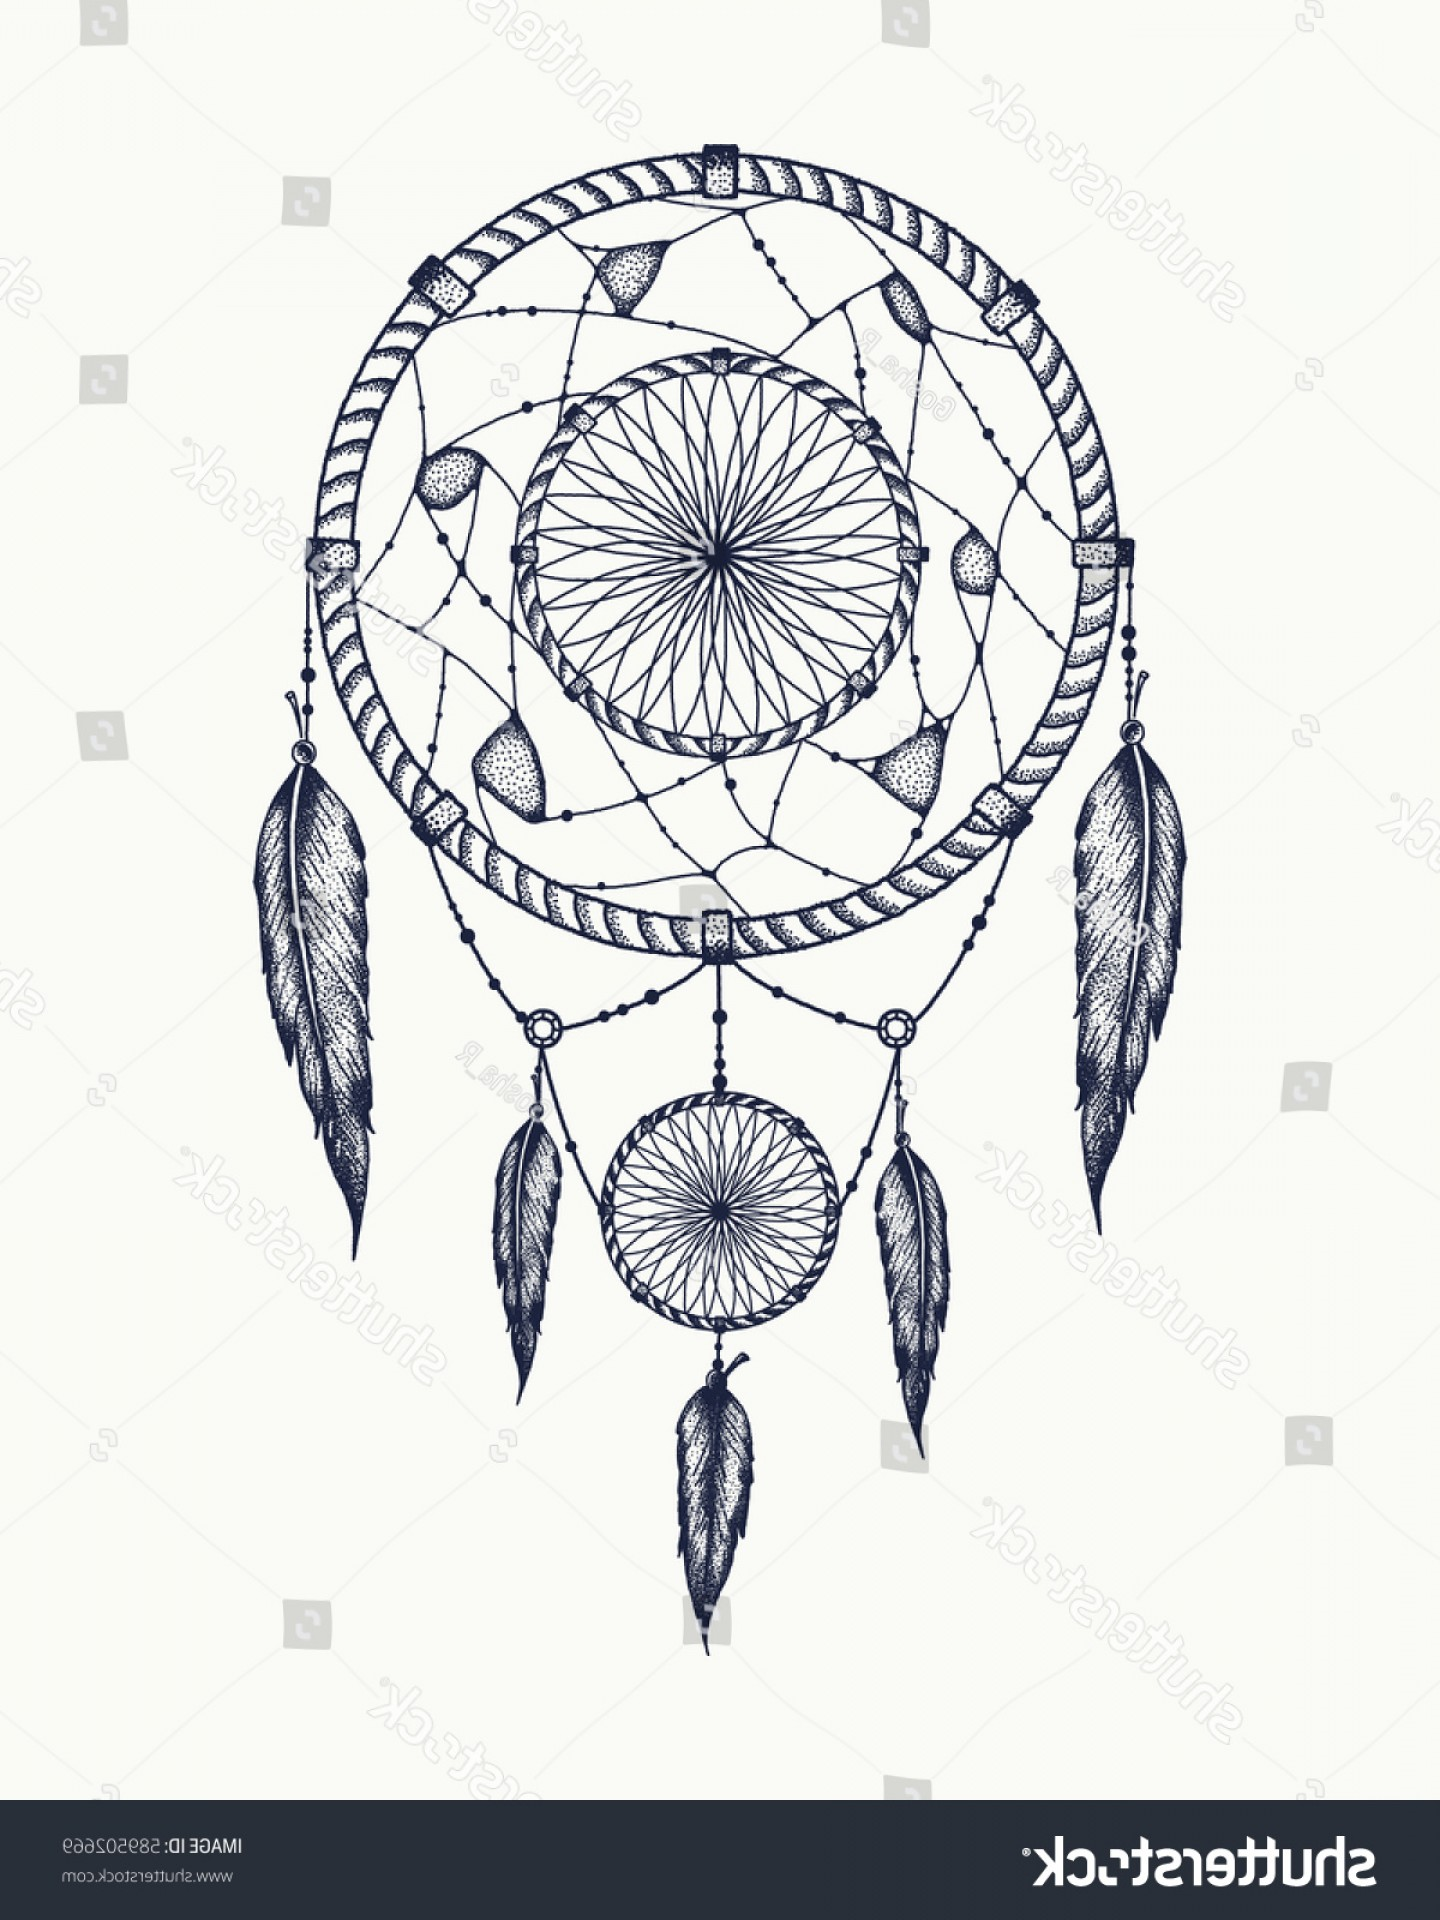 Dreamcatcher Tattoo Vector: Dream Catcher Tattoo Art Dot Works